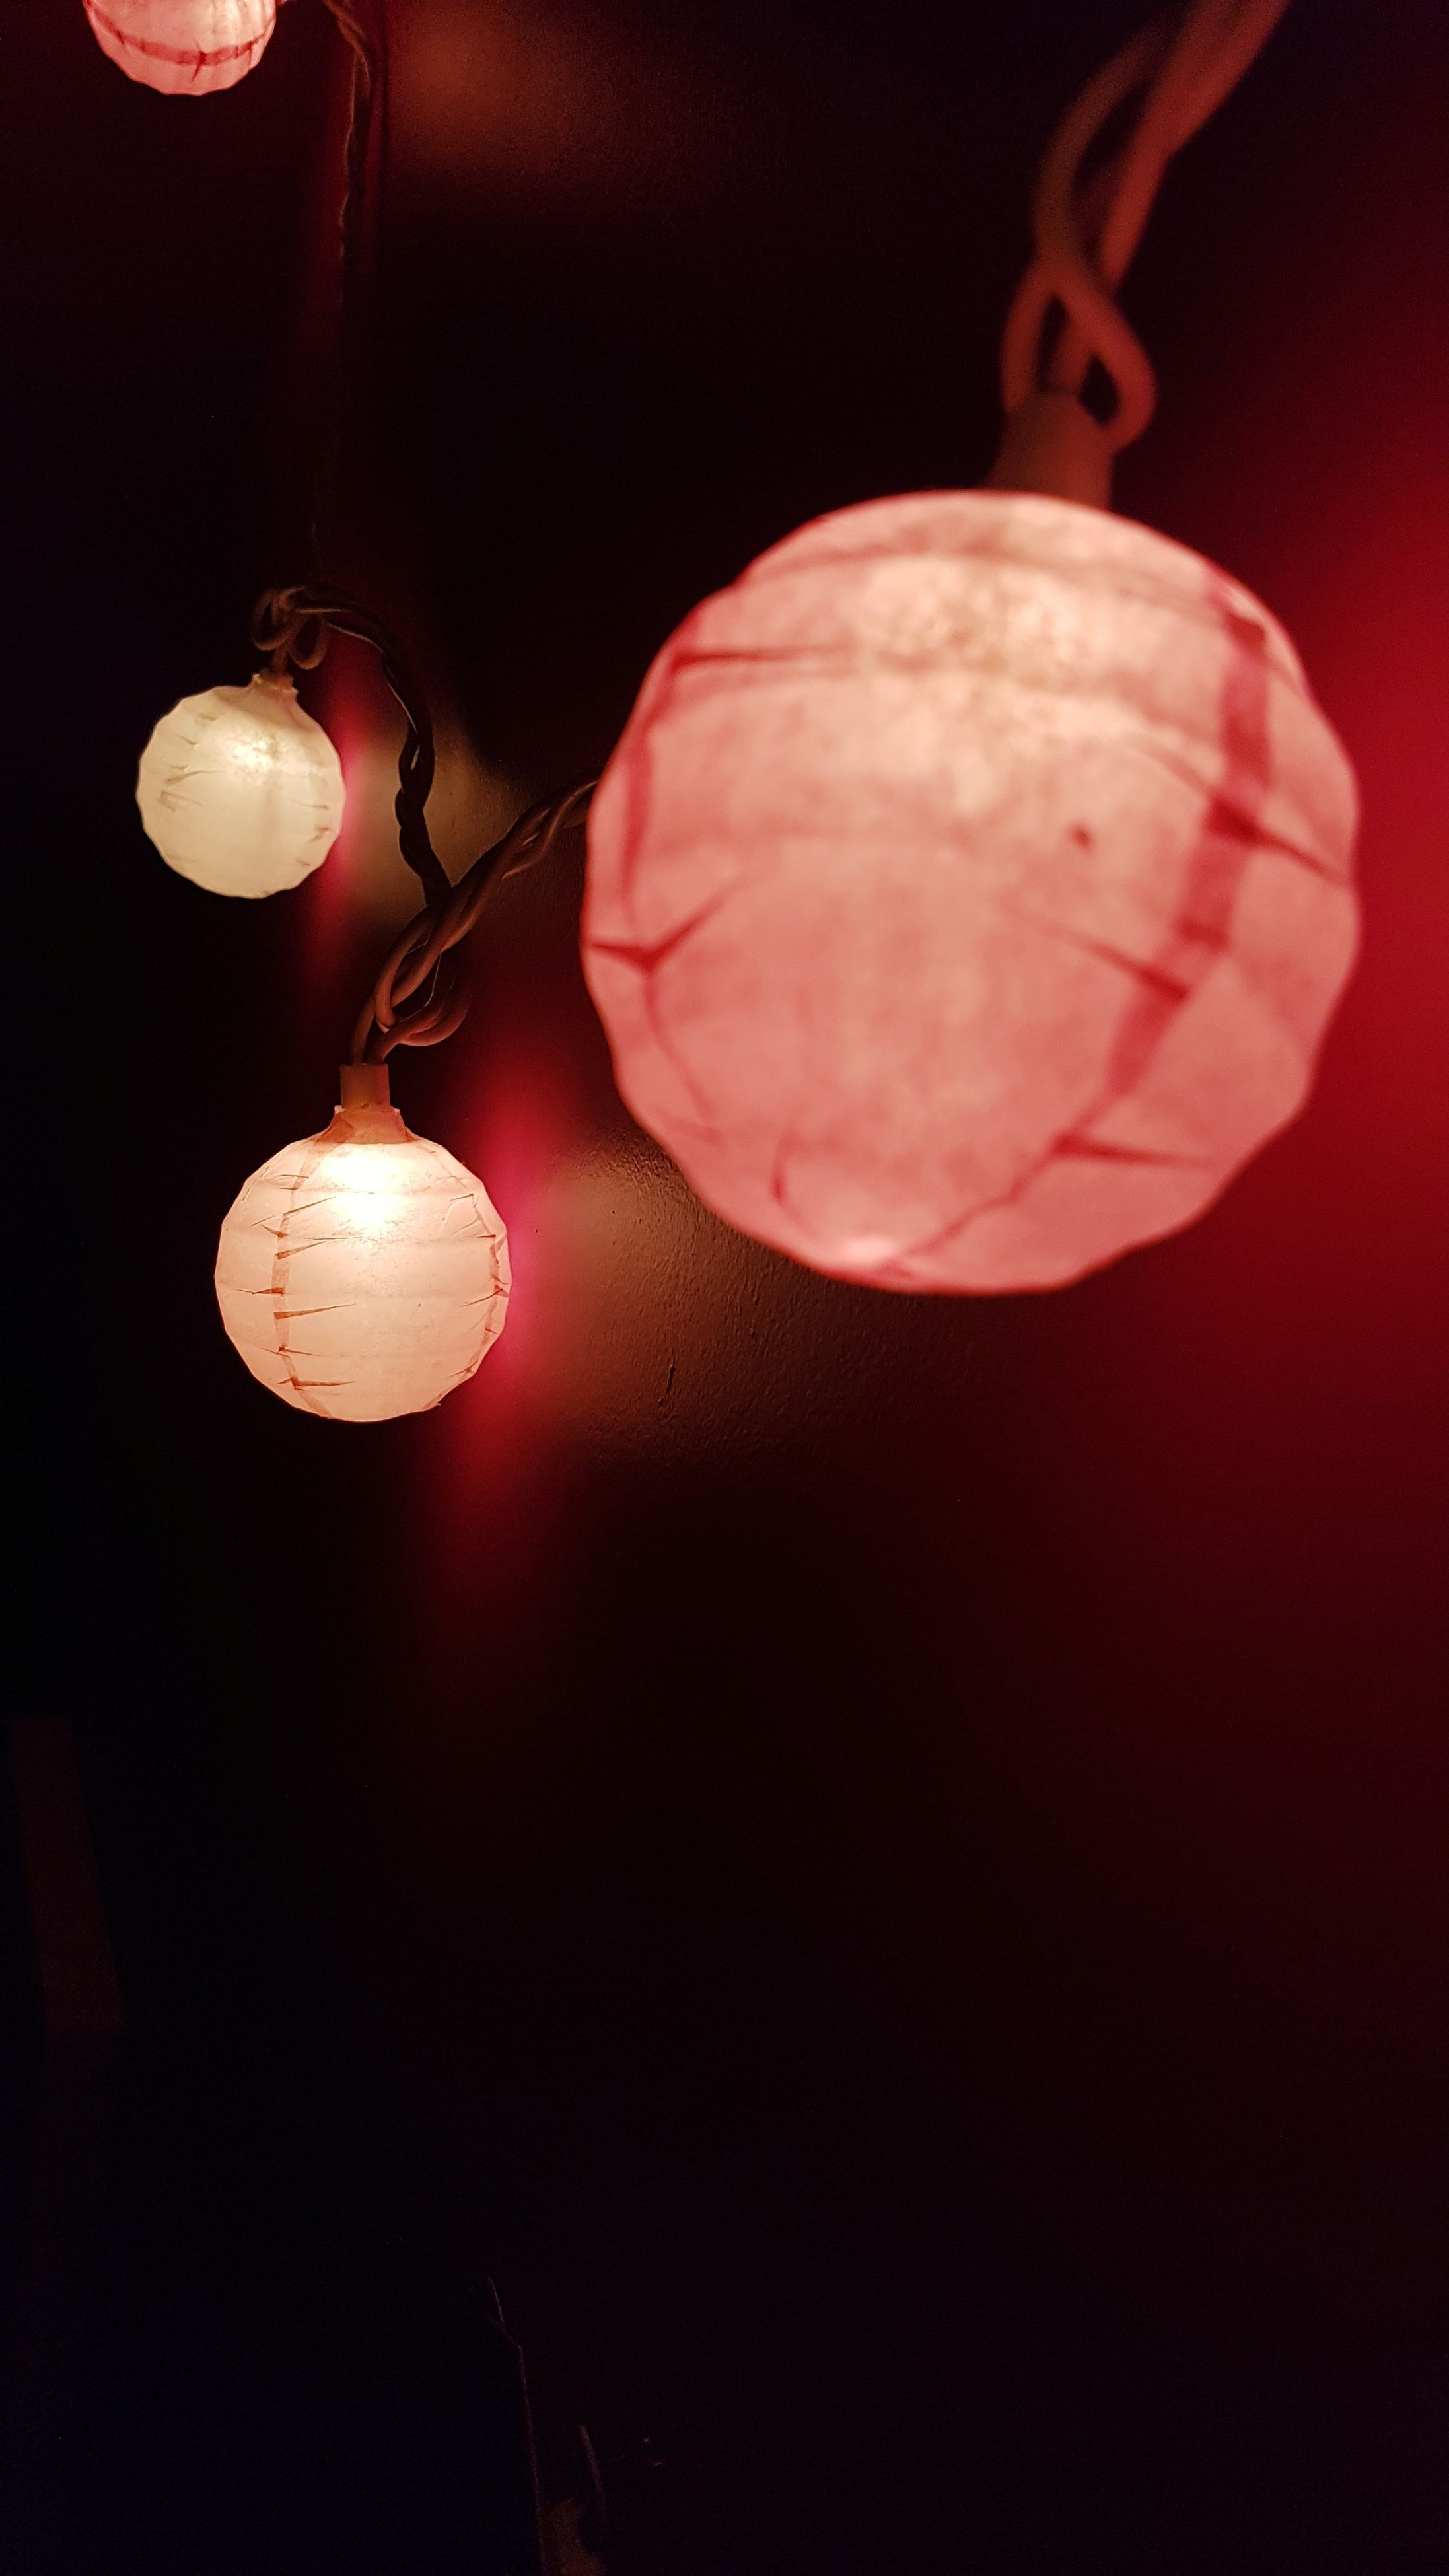 hanging, illuminated, lighting equipment, light bulb, electricity, low angle view, no people, red, indoors, night, filament, close-up